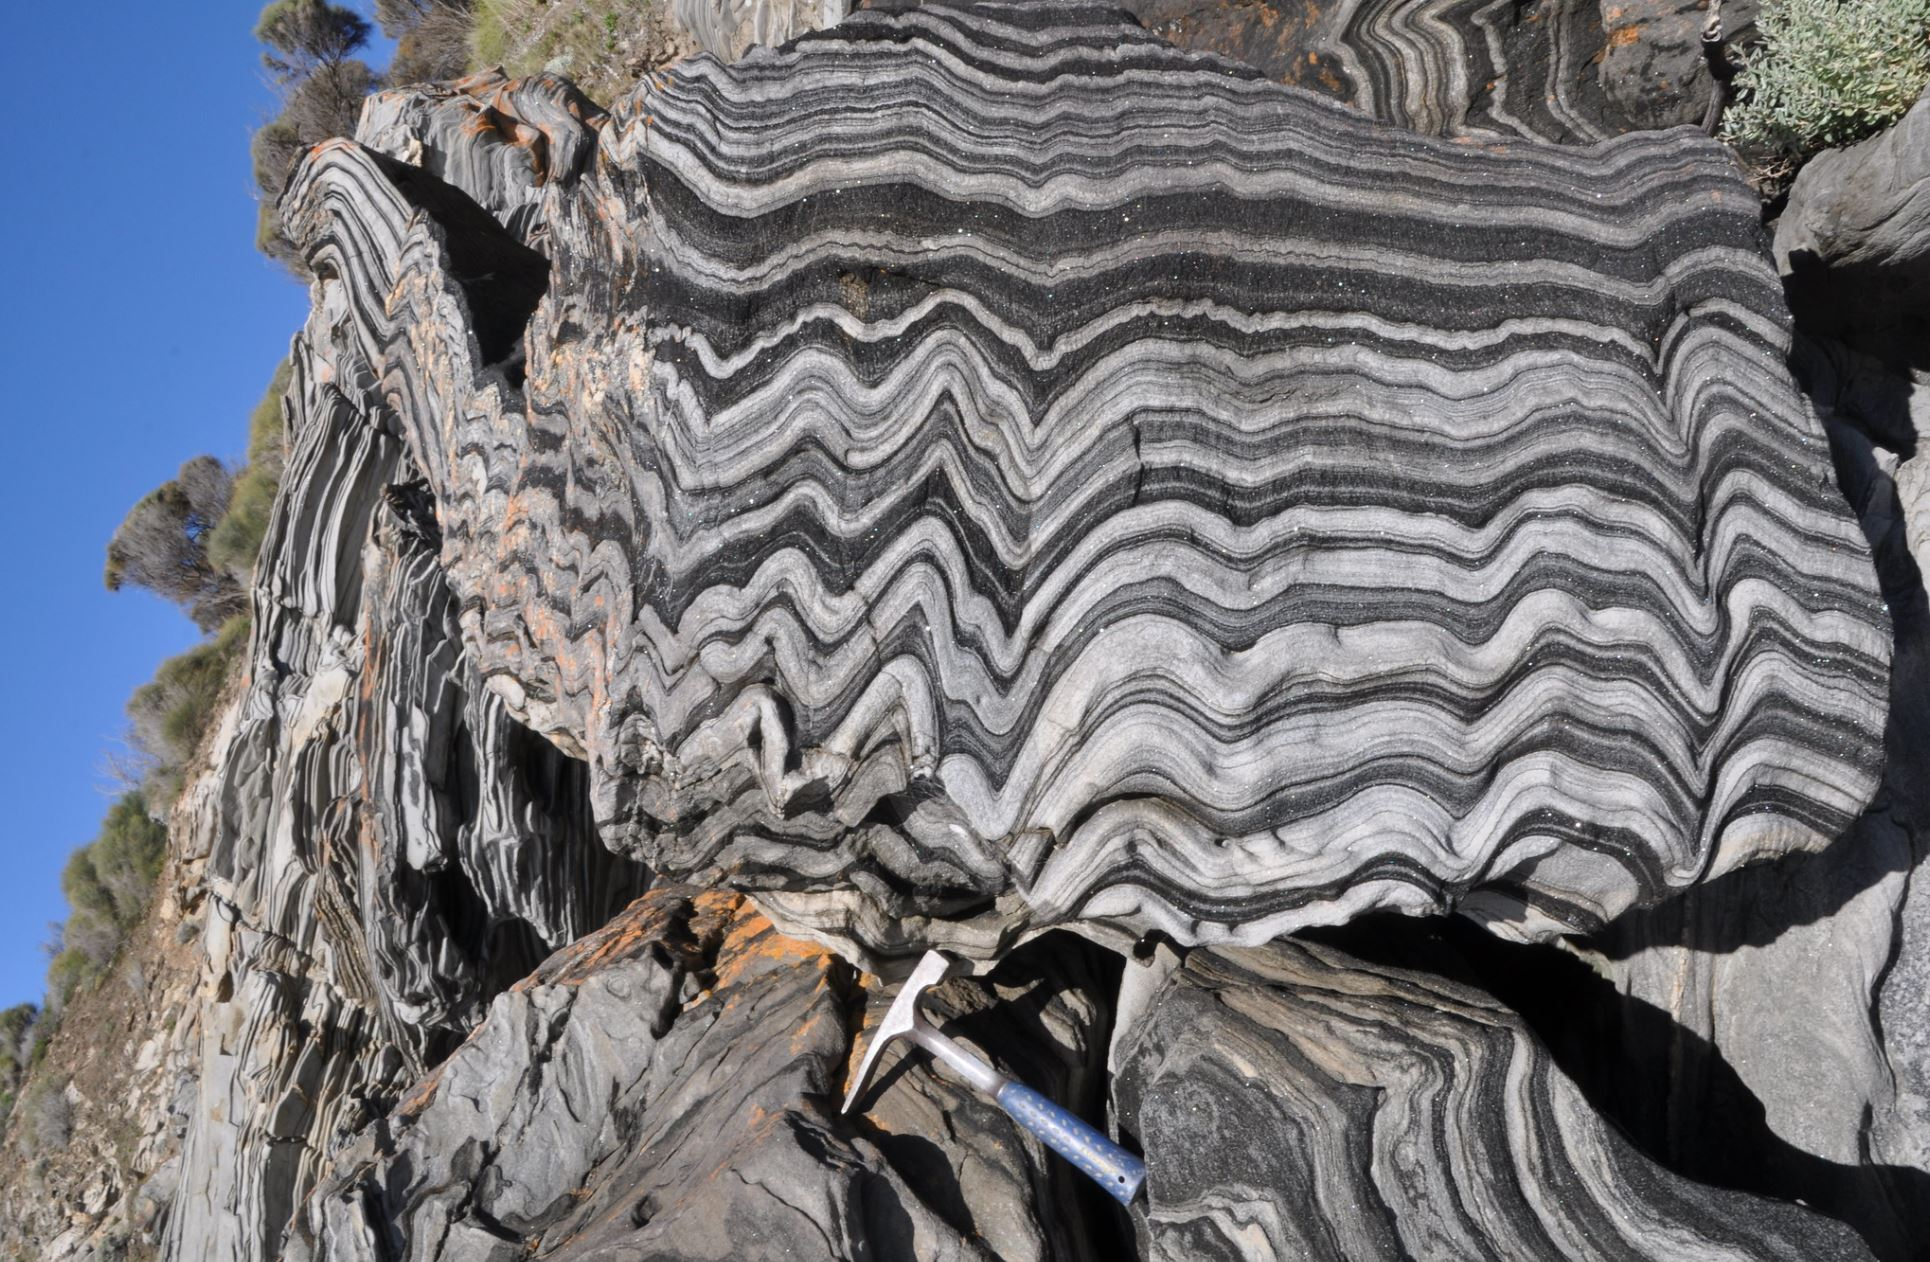 Photographed on Kangaroo Island, this rock – called a 'zebra schist' – deformed from flat-lying marine sediments through being stressed by a continental collision over 500 million years ago. - Image Credit:  Dietmar Down Under   via flickr